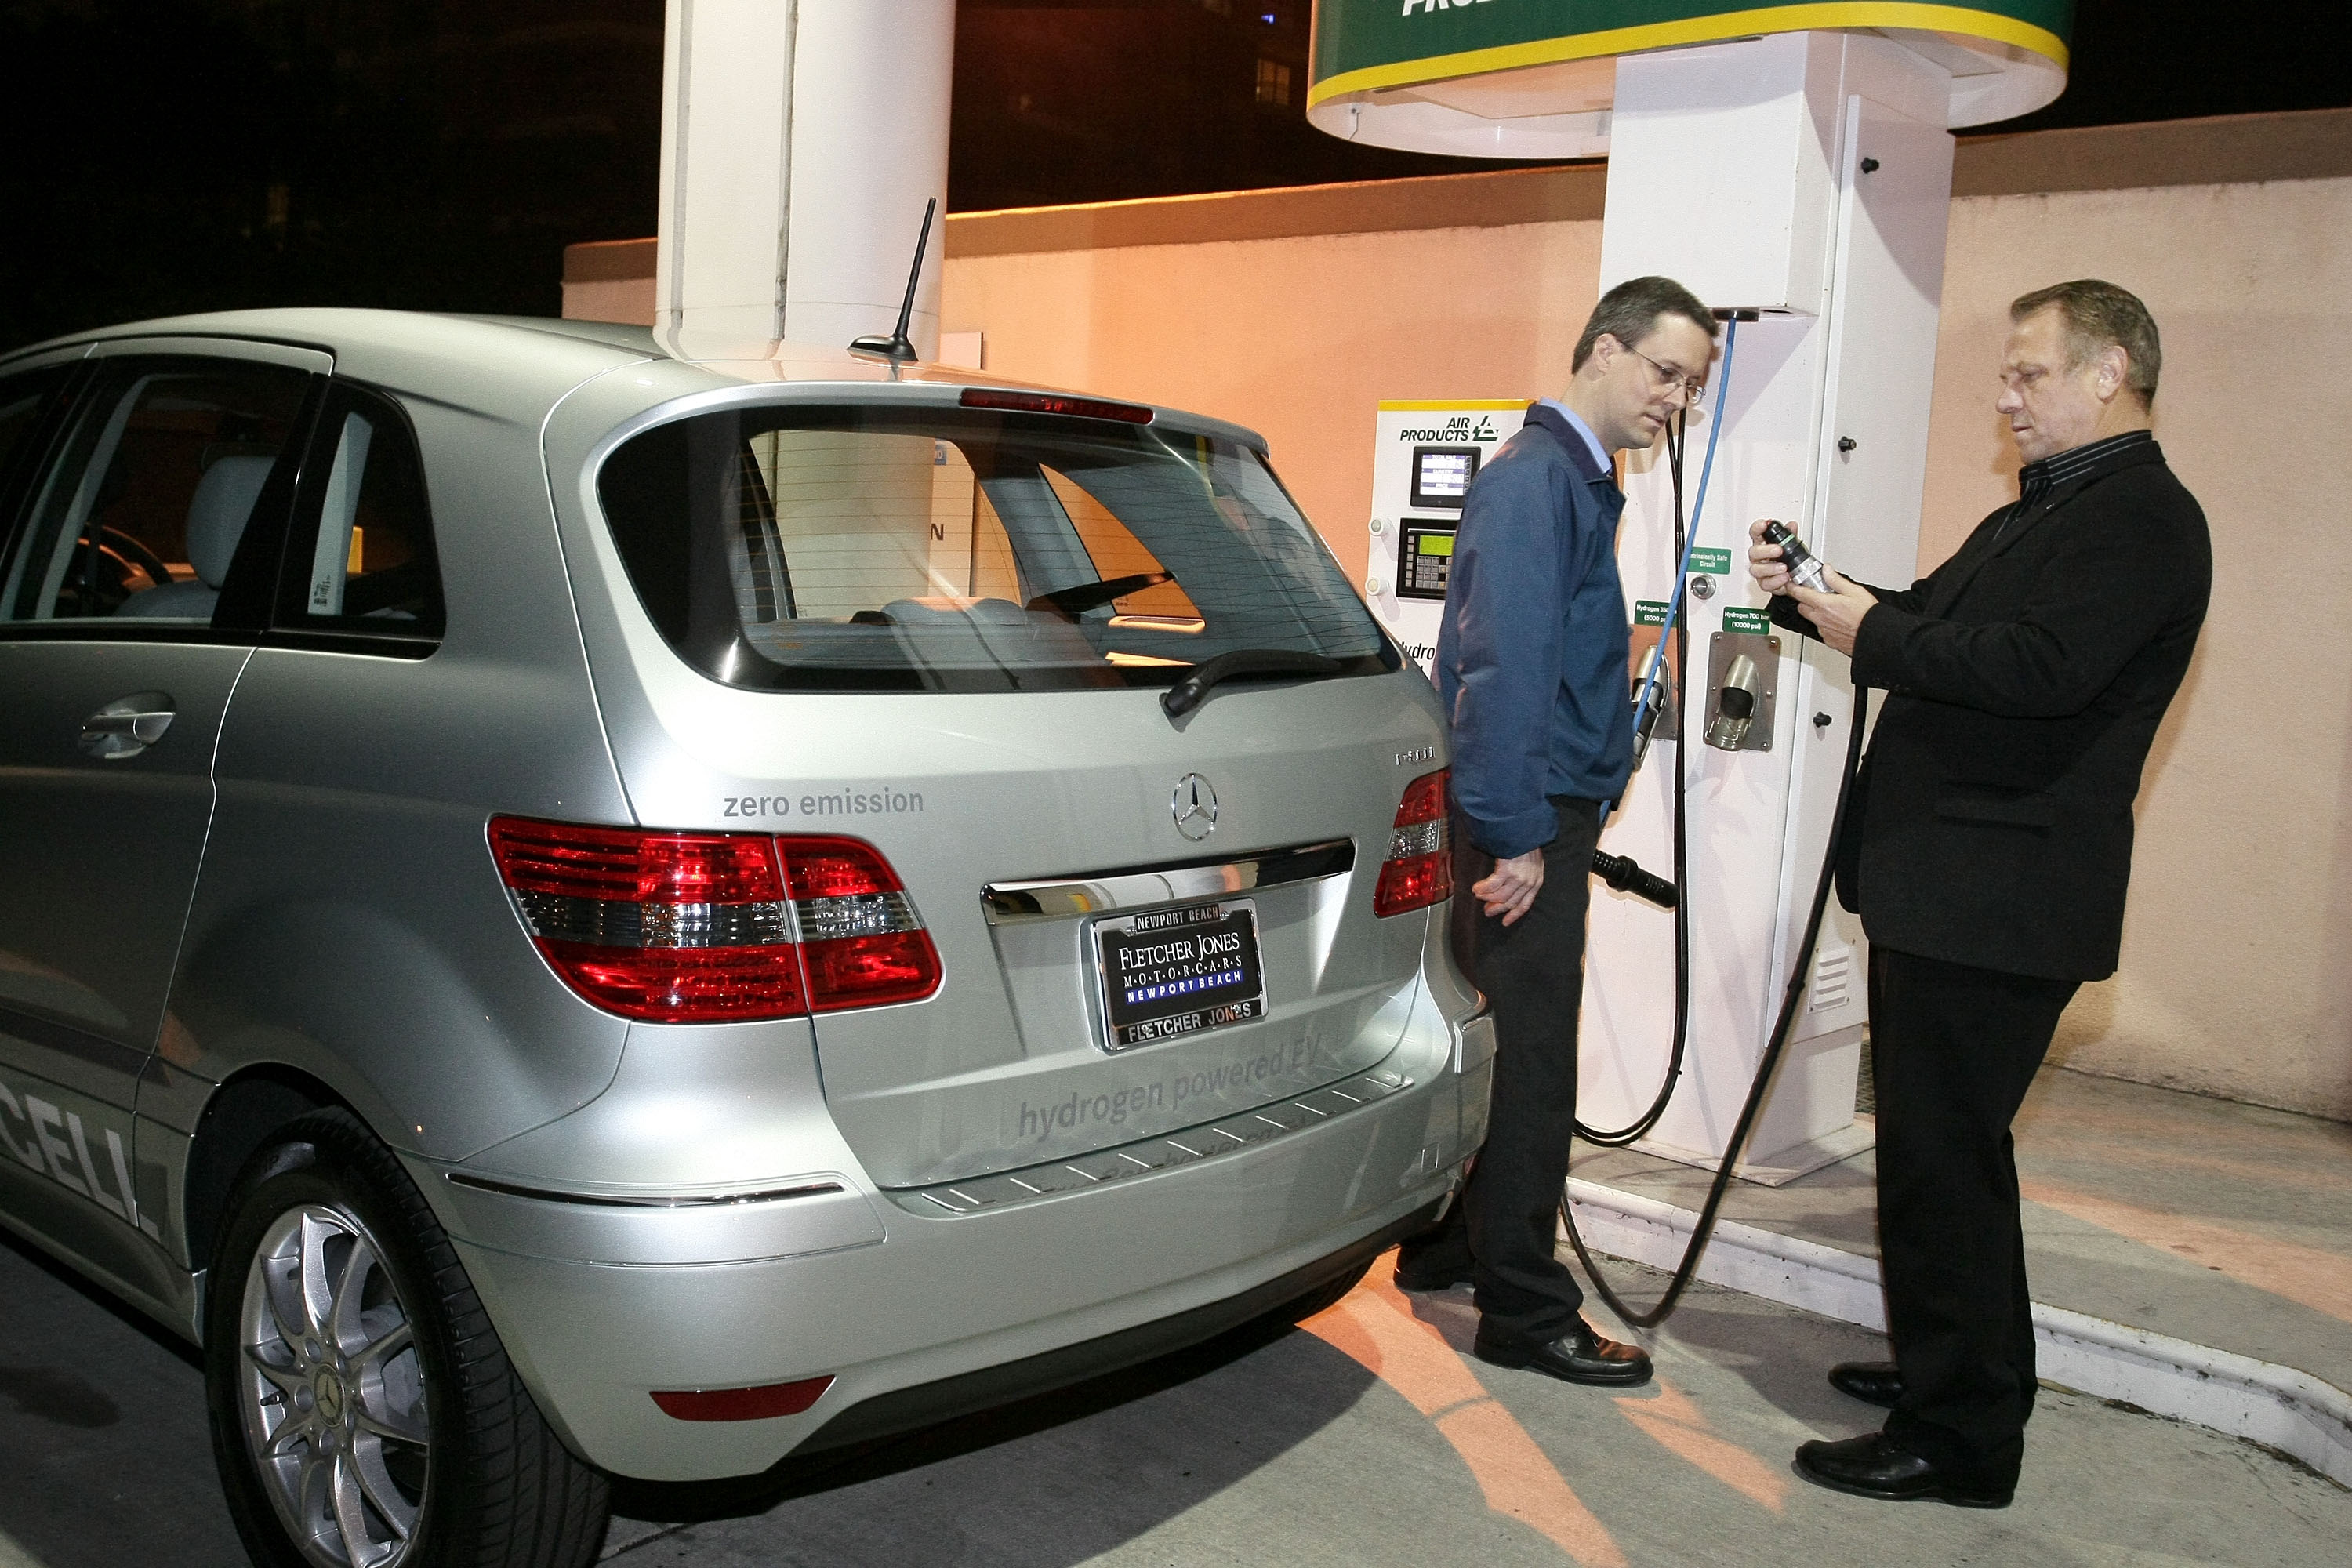 Chevy Volt Lease Cost >> Electric-Car Deliveries? Mercedes-Benz Says, Hey, Fuel ...